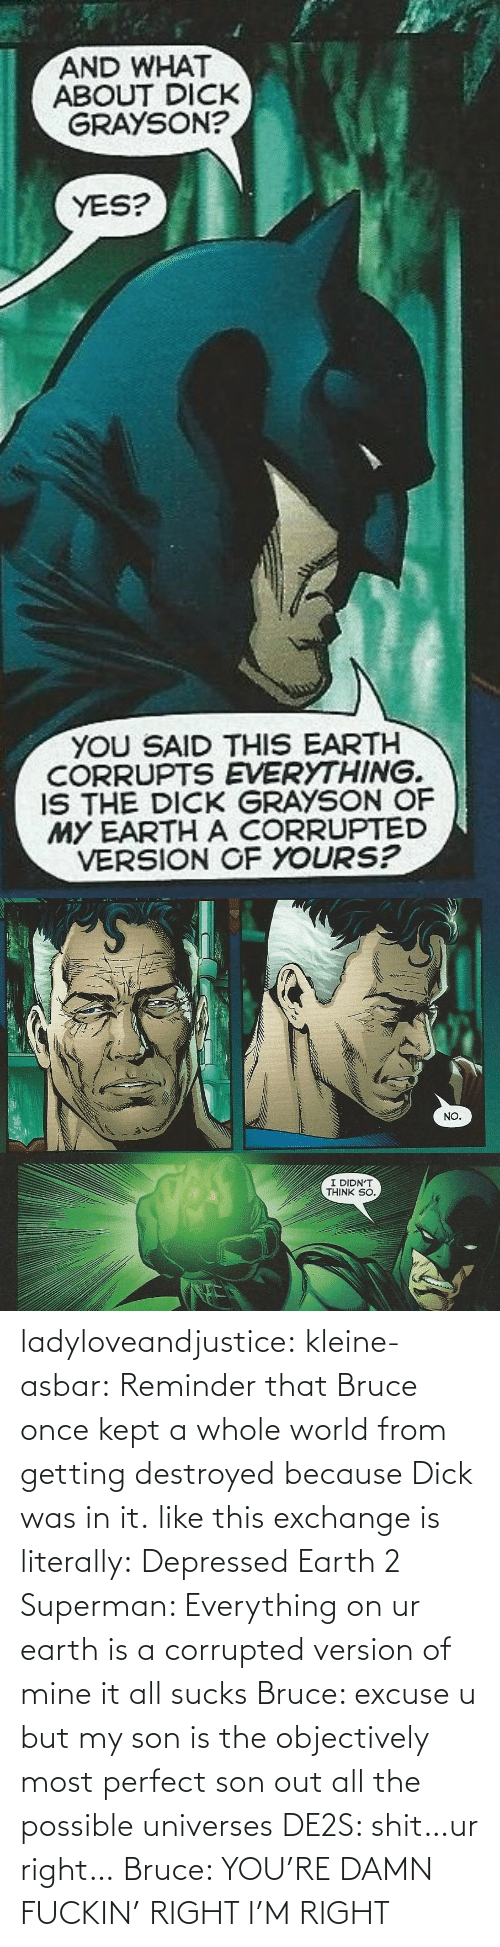 possible: ladyloveandjustice:  kleine-asbar: Reminder that Bruce once kept a whole world from getting destroyed because Dick was in it. like this exchange is literally: Depressed Earth 2 Superman: Everything on ur earth is a corrupted version of mine it all sucks Bruce: excuse u but my son is the objectively most perfect son out all the possible universes DE2S: shit…ur right… Bruce: YOU'RE DAMN FUCKIN' RIGHT I'M RIGHT